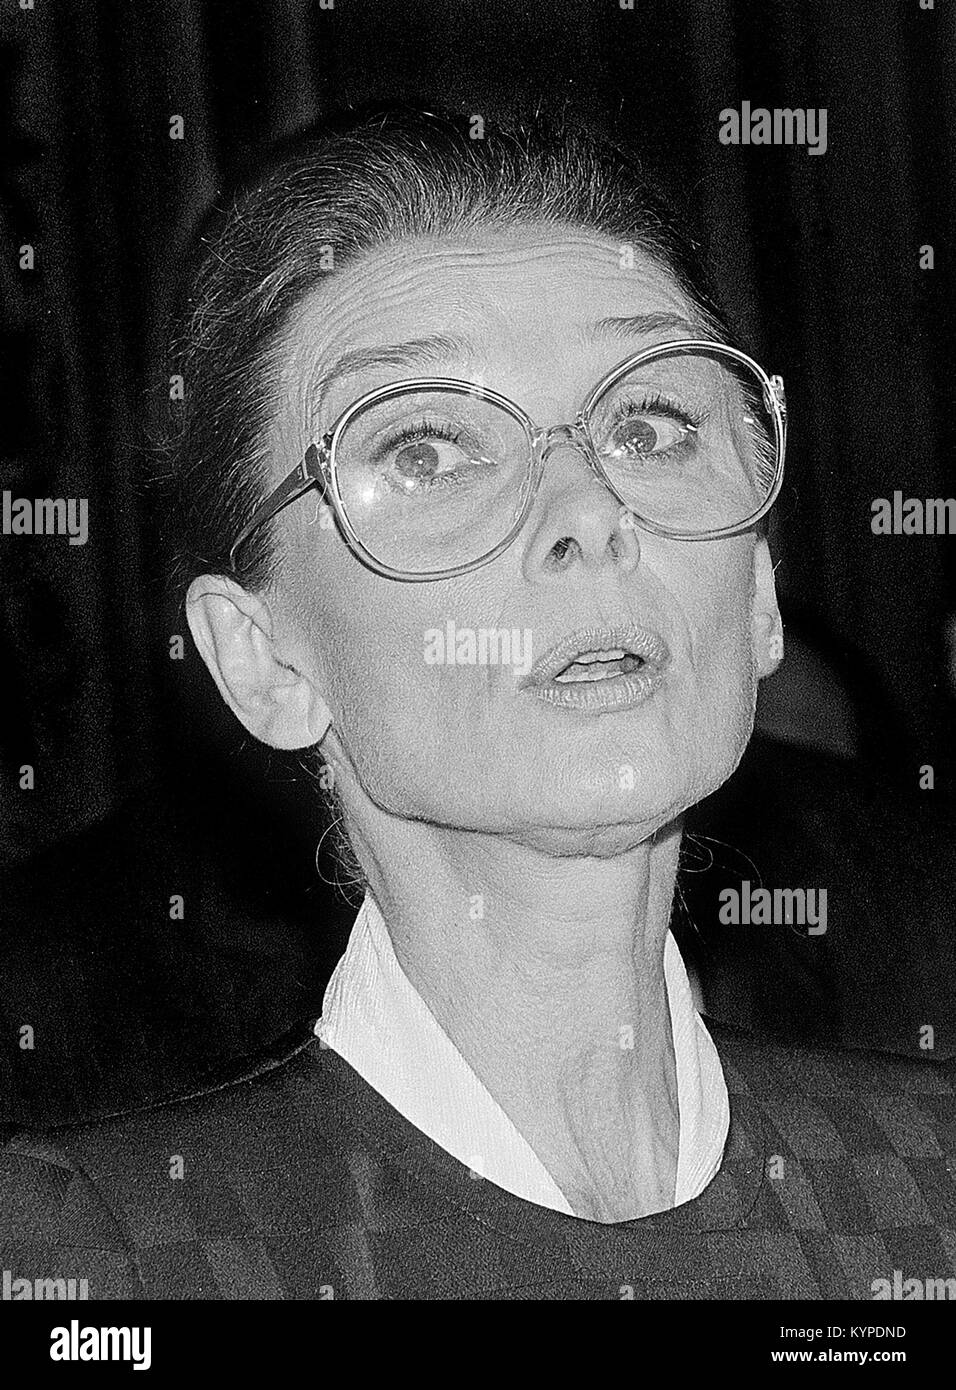 Audrey Hepburn (1929-1993). The American actress and humanitarian photographed in 1991. - Stock Image